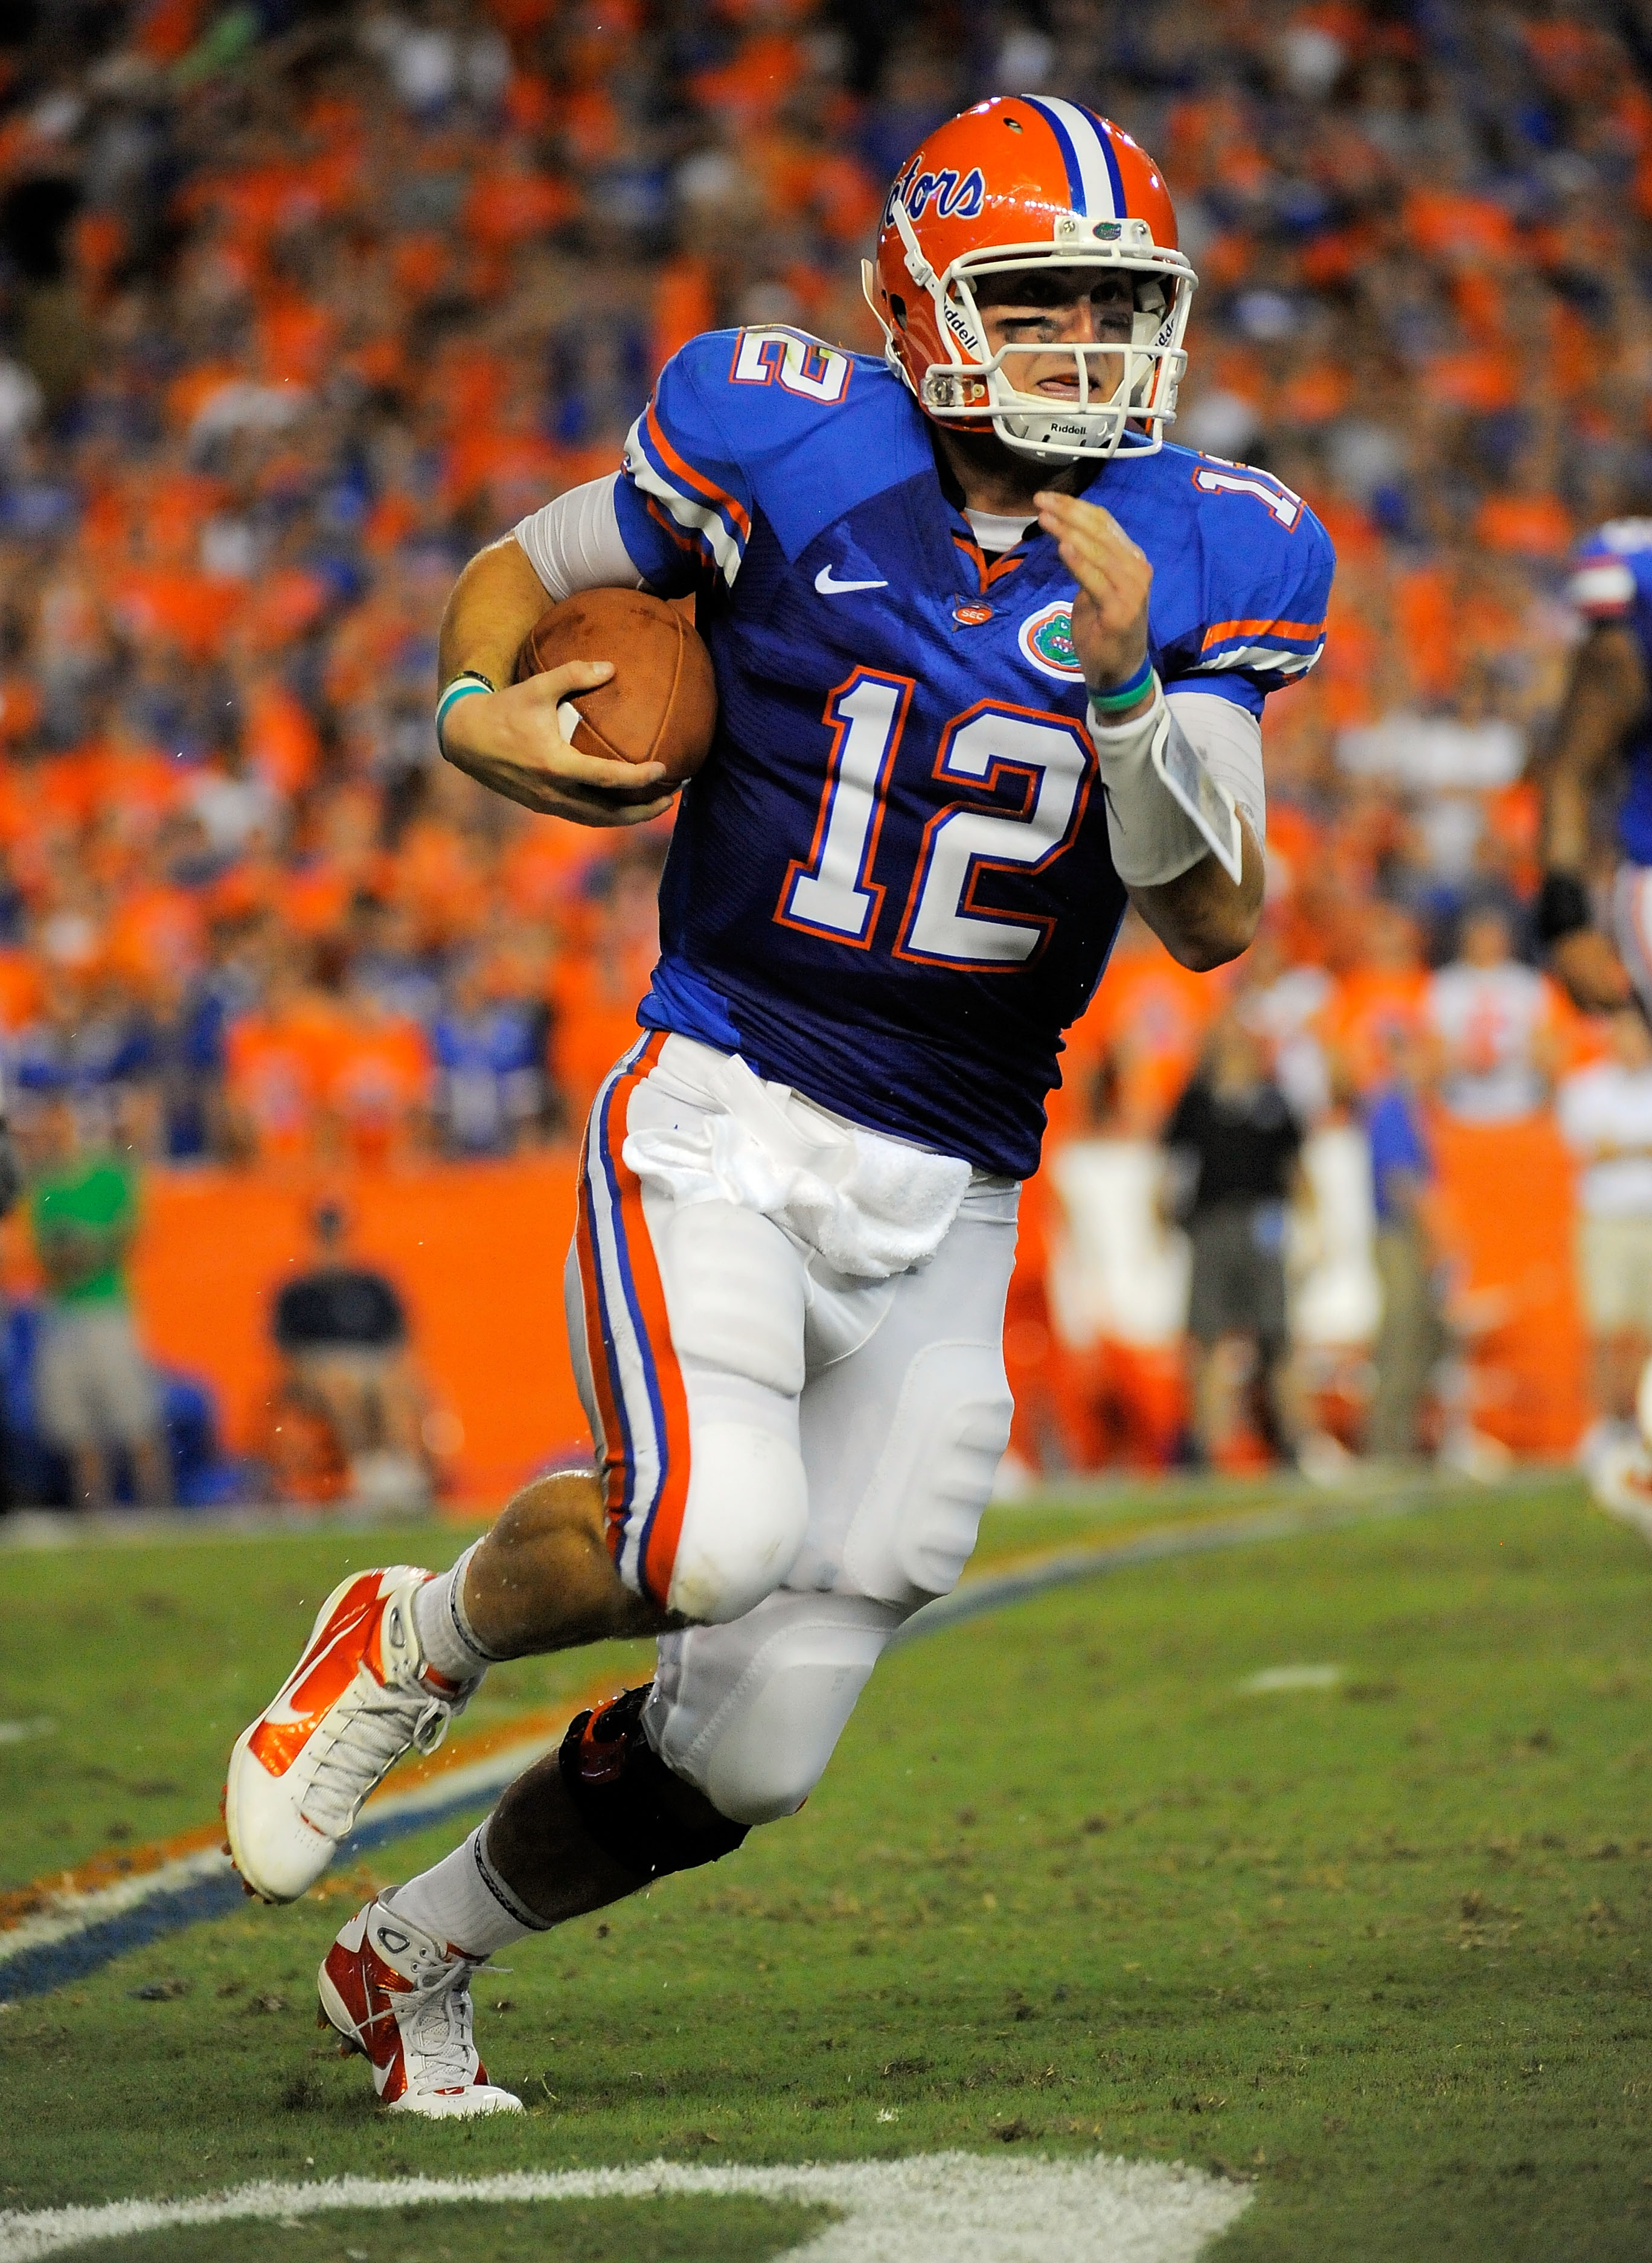 GAINESVILLE, FL - SEPTEMBER 25:  Quarterback John Brantley #12 of the Florida Gators scrambles against the Kentucky Wildcats at Ben Hill Griffin Stadium on September 25, 2010 in Gainesville, Florida.  (Photo by Doug Benc/Getty Images)